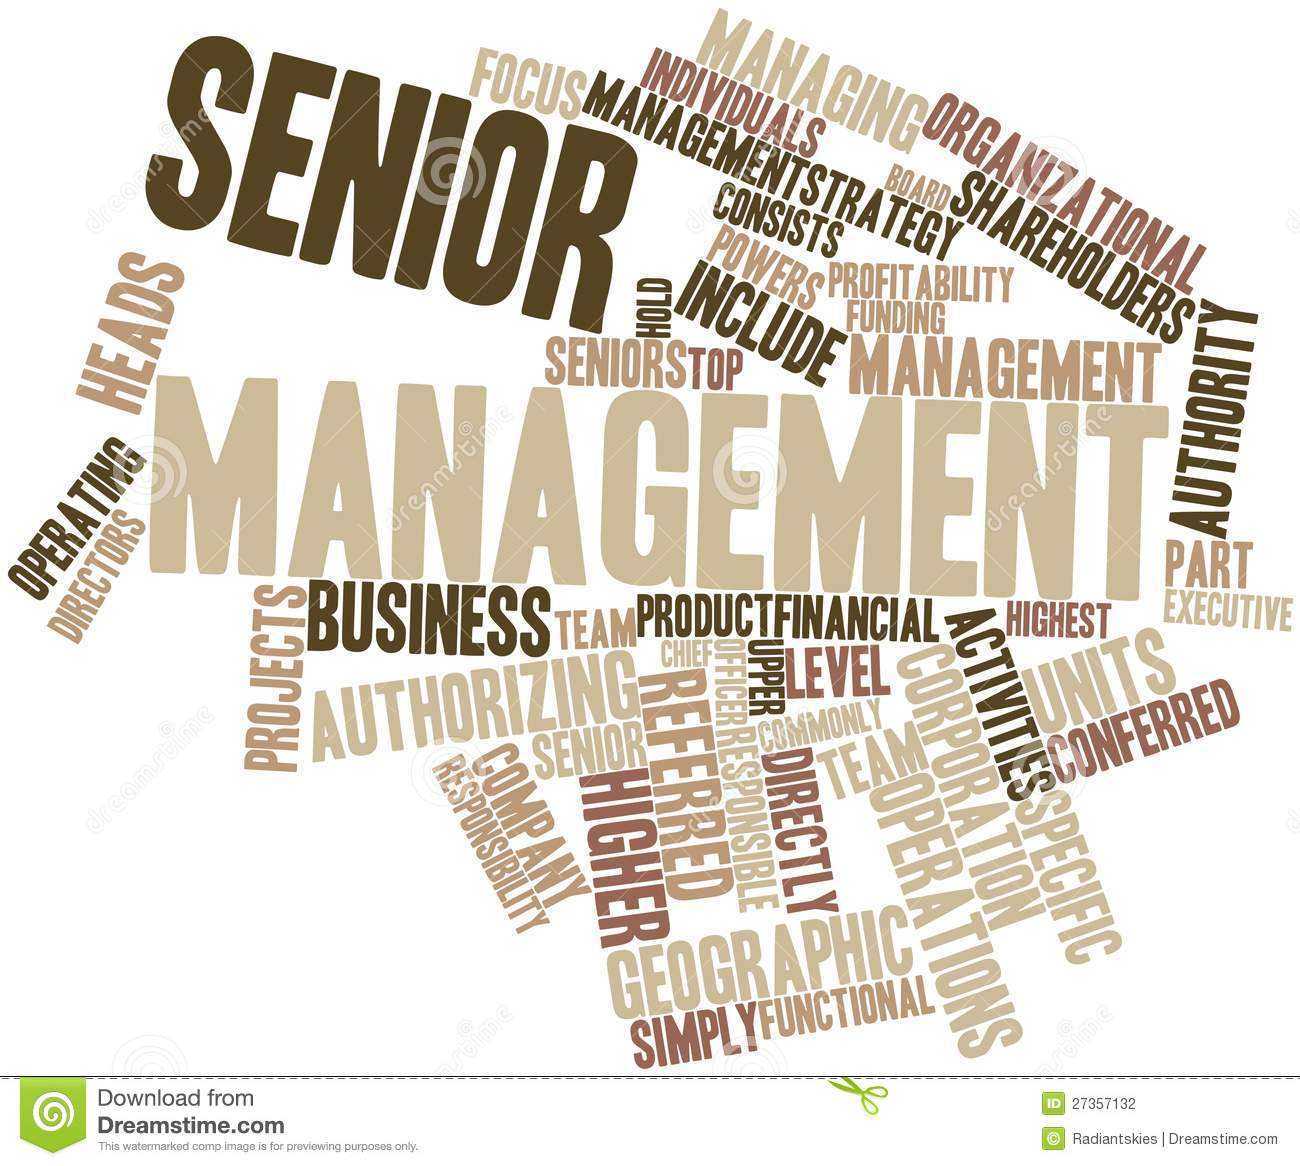 Abstract word cloud for Senior management with related tags and terms.